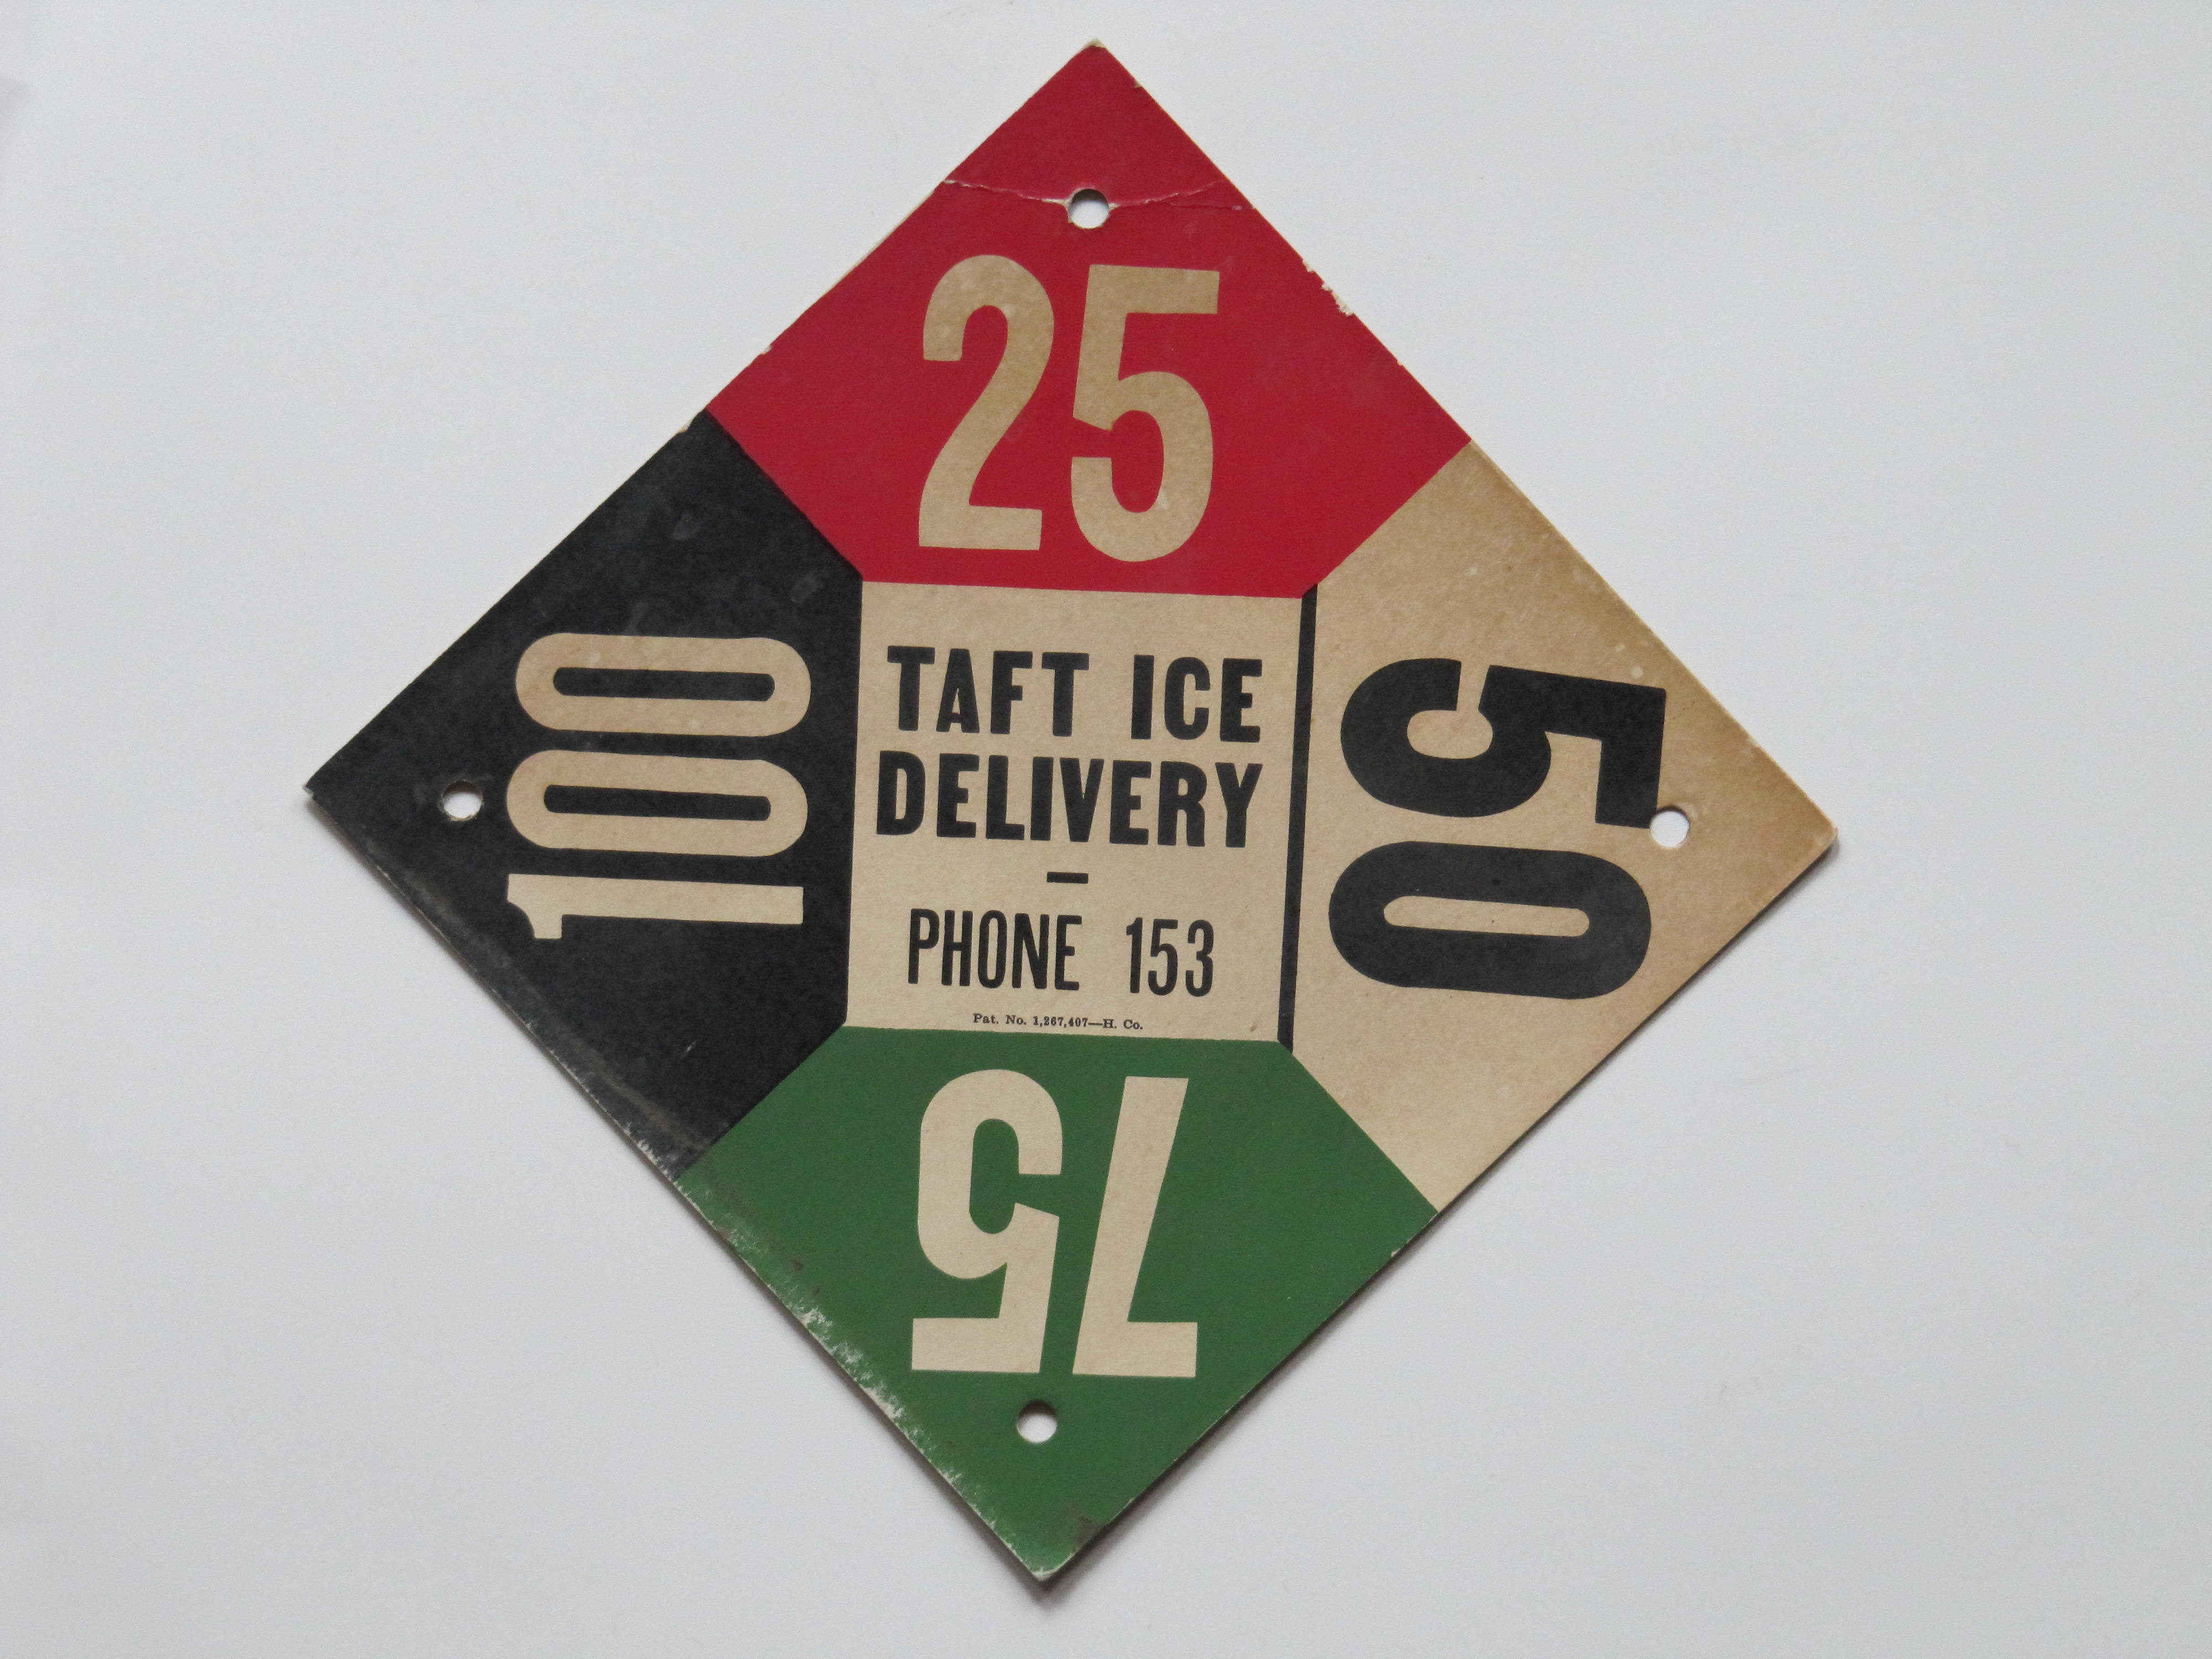 Taft Ice Delivery